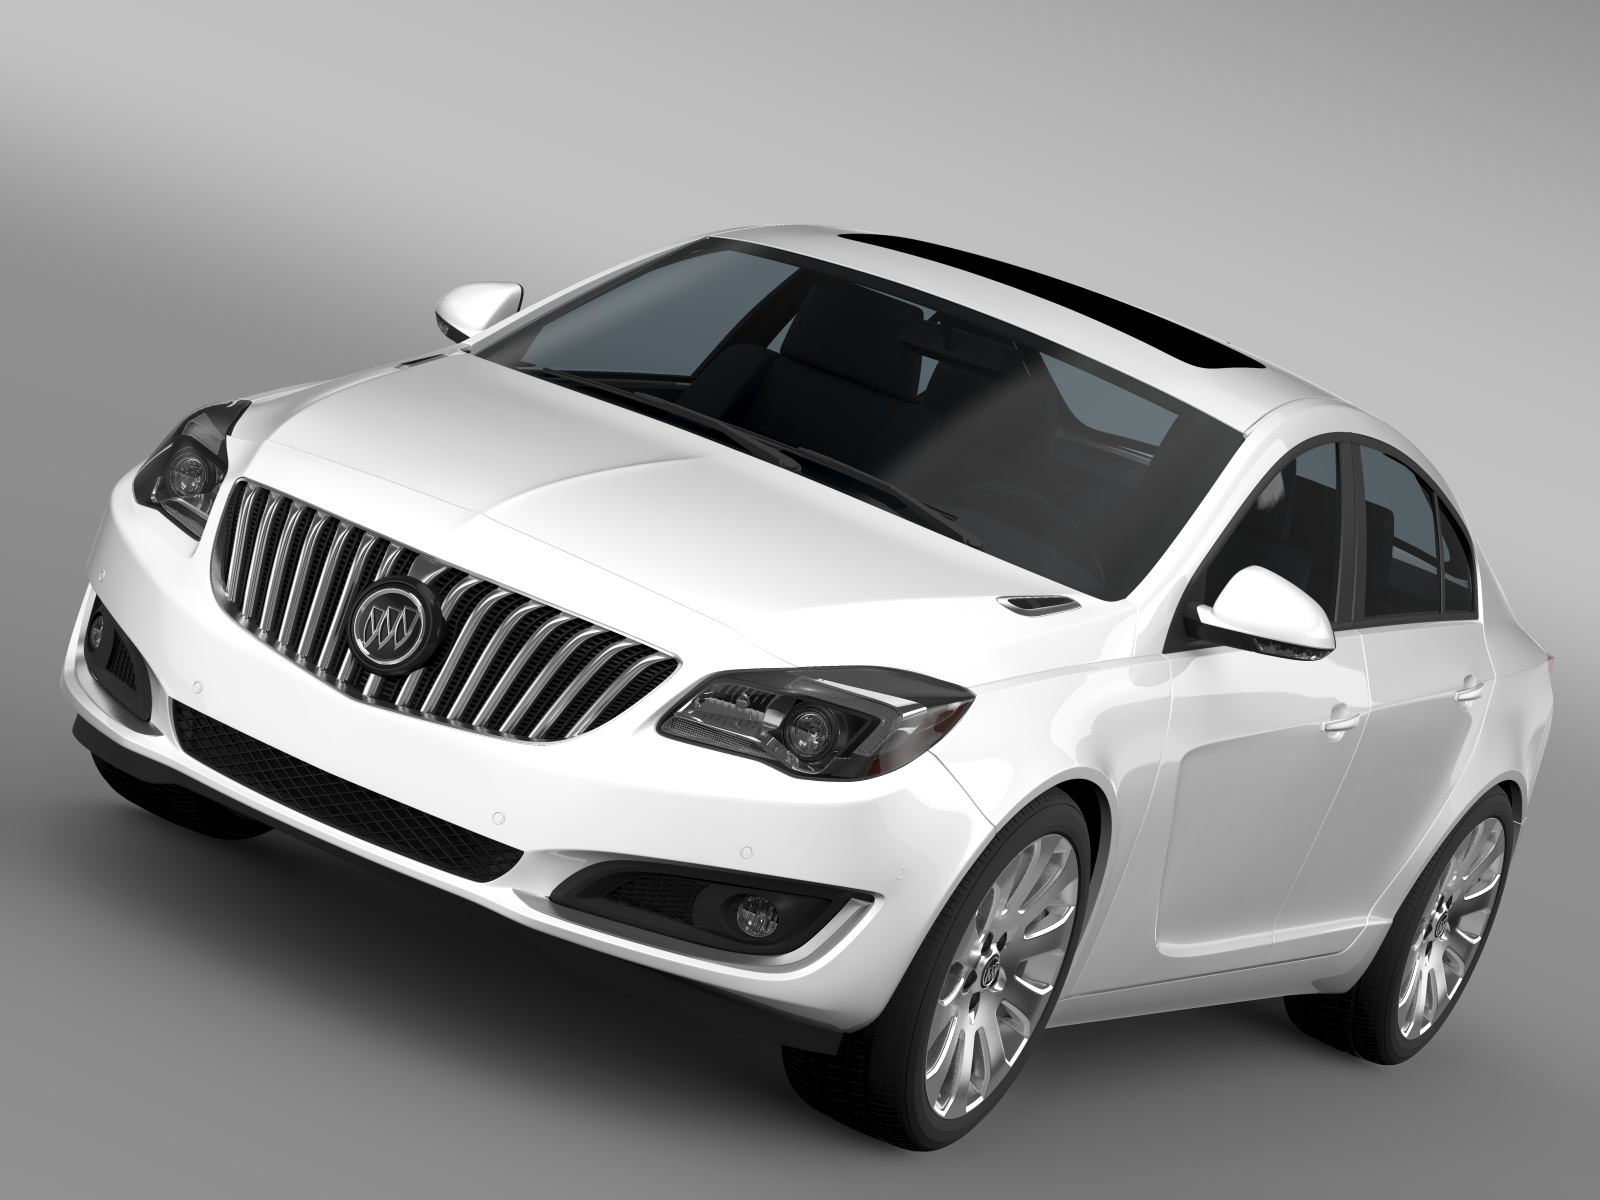 buick regal 2015 3d model 3ds max fbx c4d lwo ma mb hrc xsi obj 215129